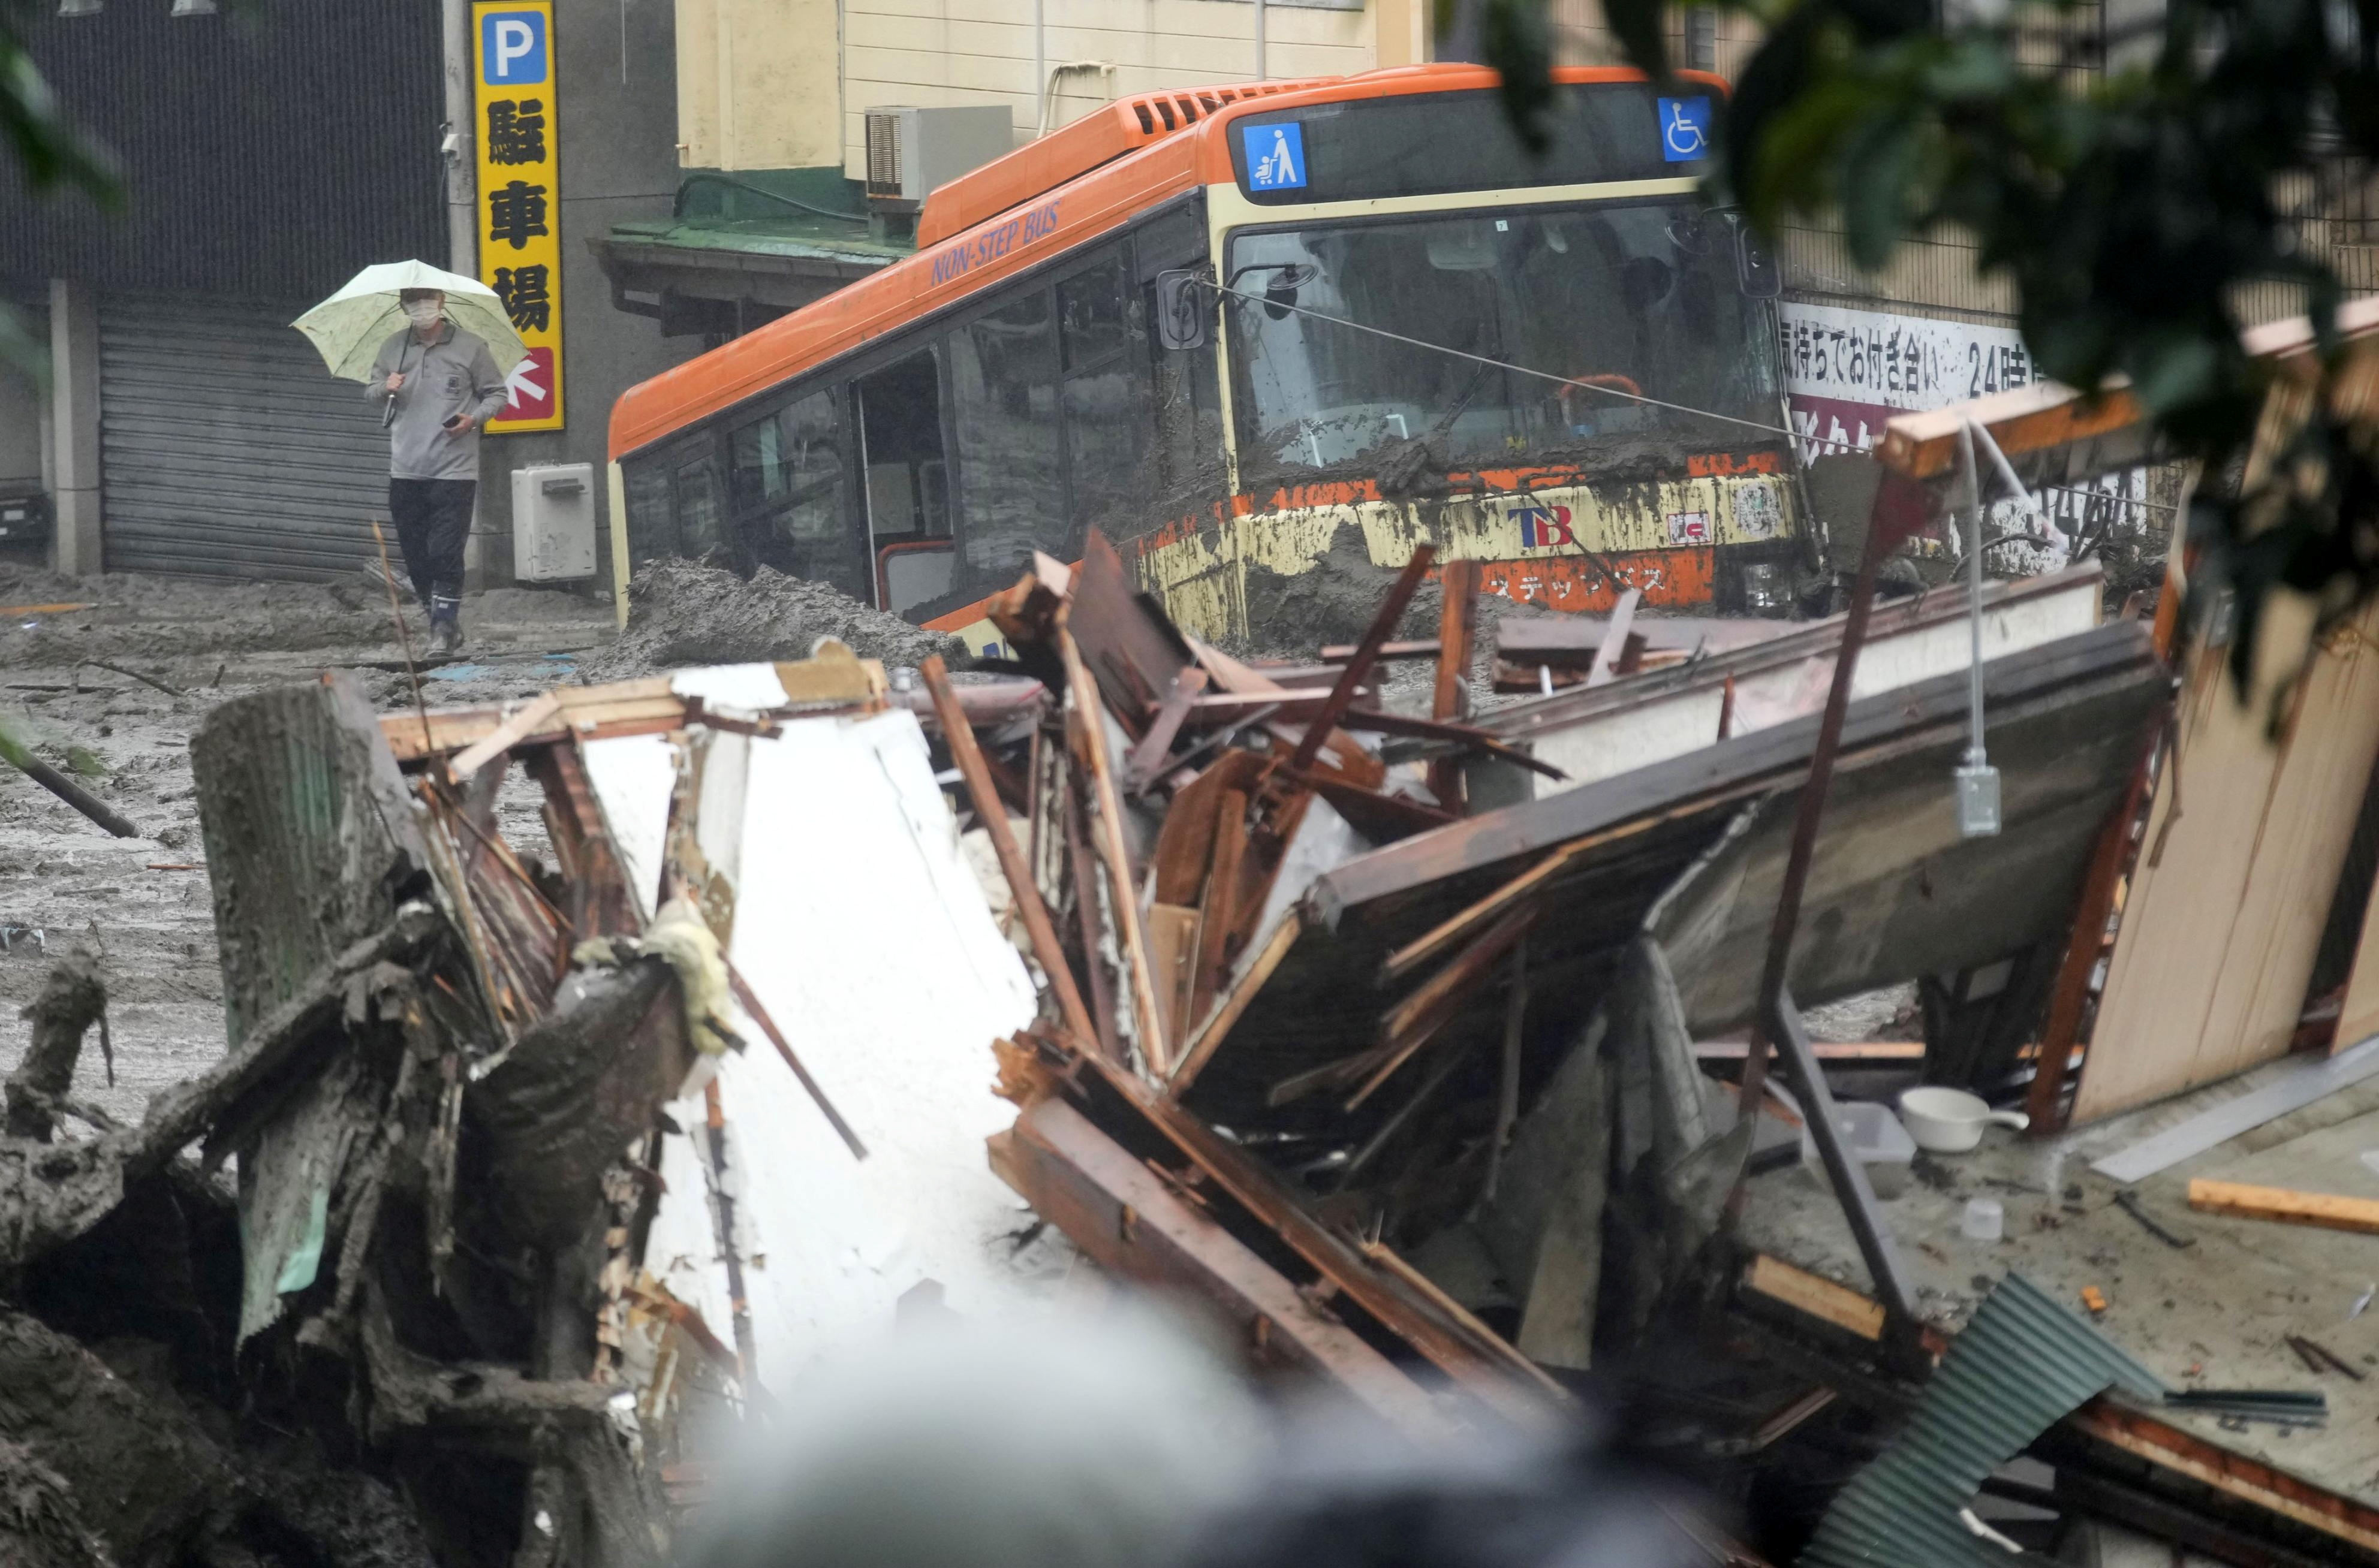 A damaged bus and debris of the houses are seen at a mudslide site following heavy rain at Izusan district in Atami, Japan July 3, 2021. Kyodo/via REUTERS